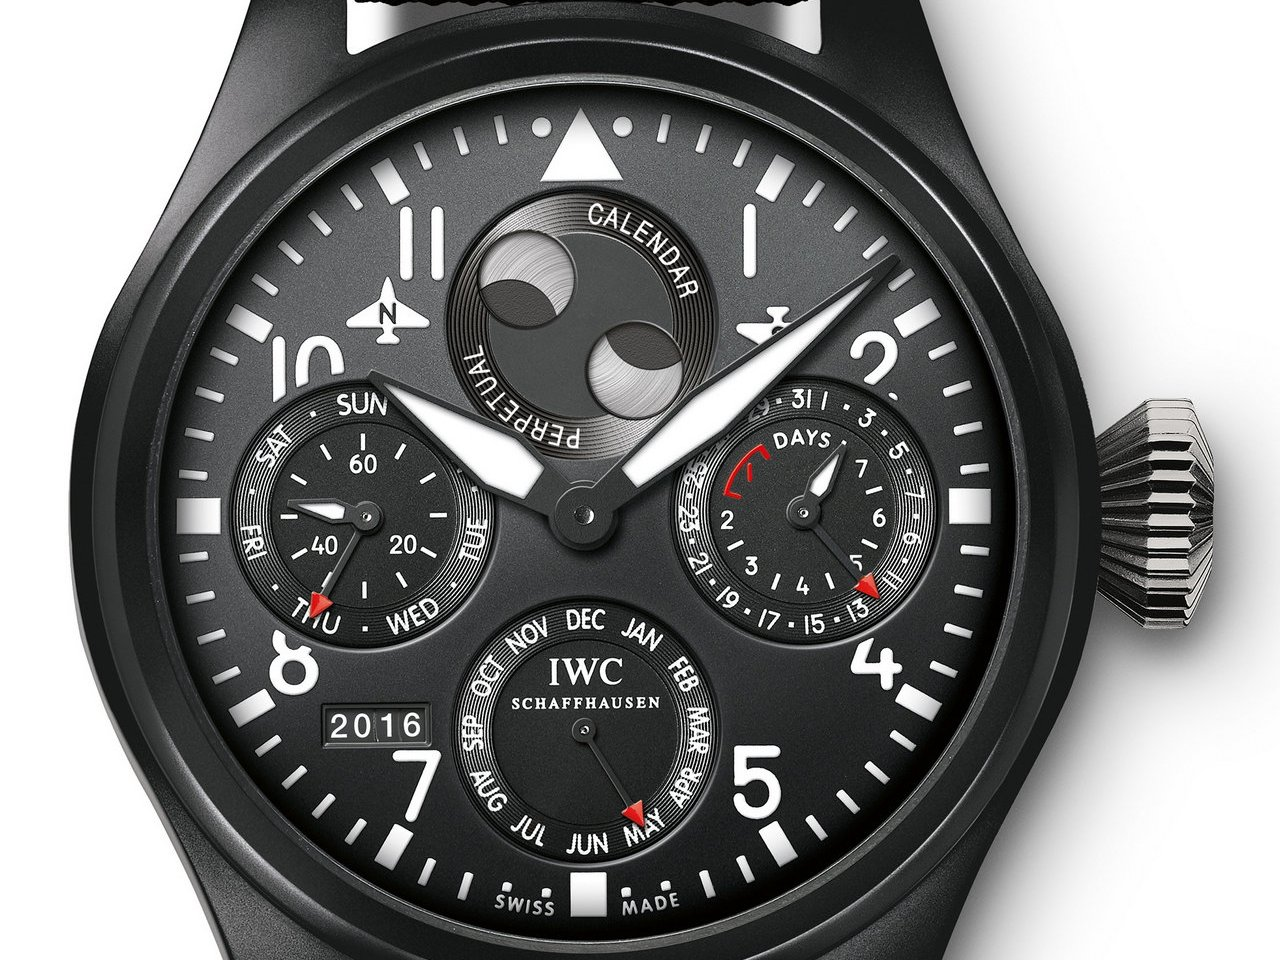 SIHH-2016-IWC-Big-Pilot-Watch-Perpetual-Calendar-TOP-GUN-IW502902-0-100_2